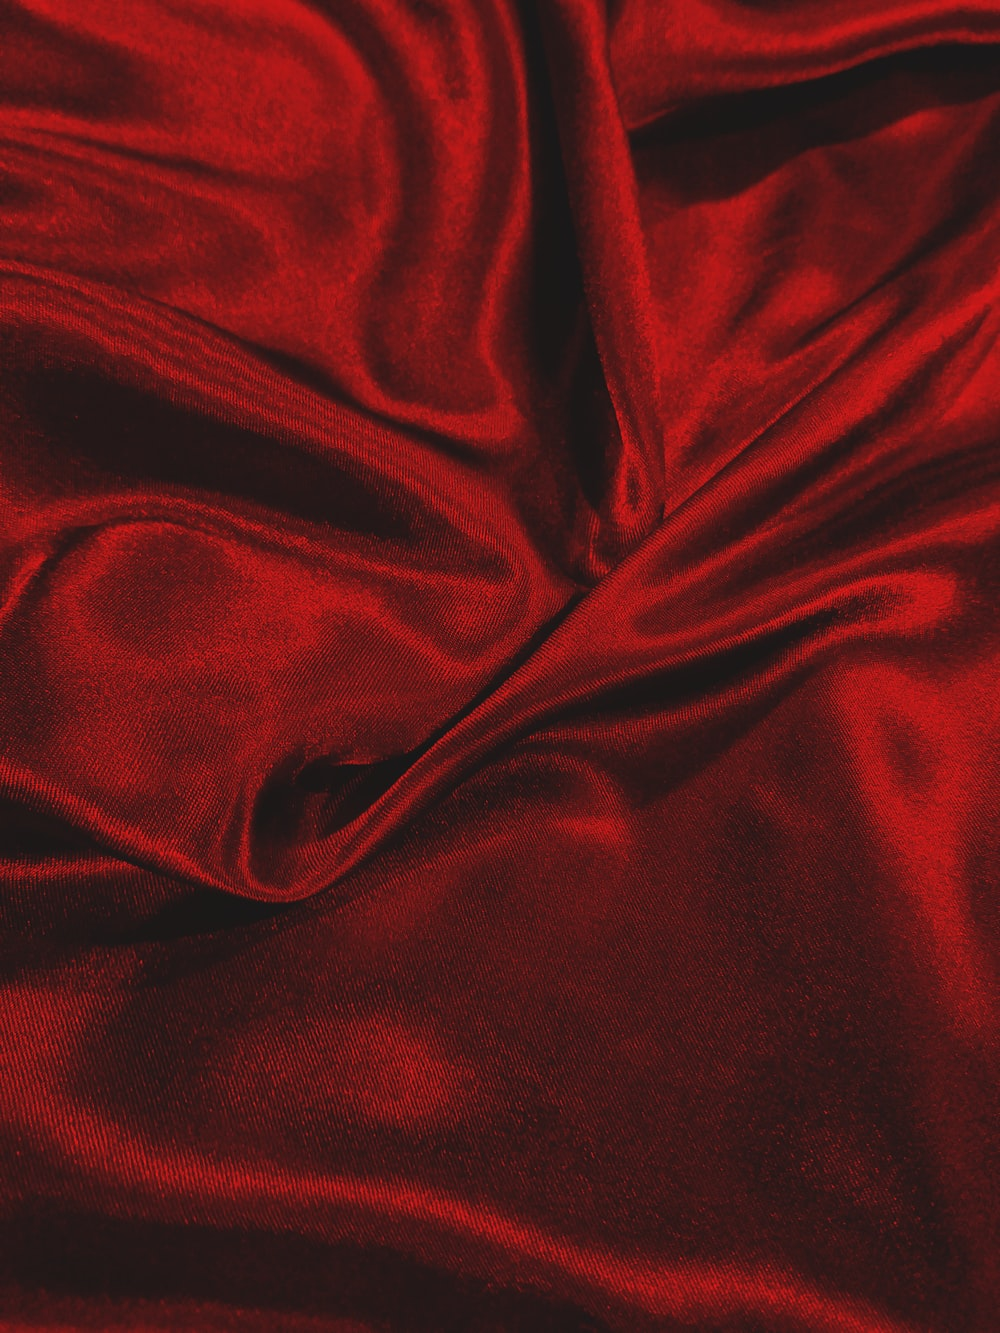 Red Wallpapers Free Hd Download 500 Hq Unsplash